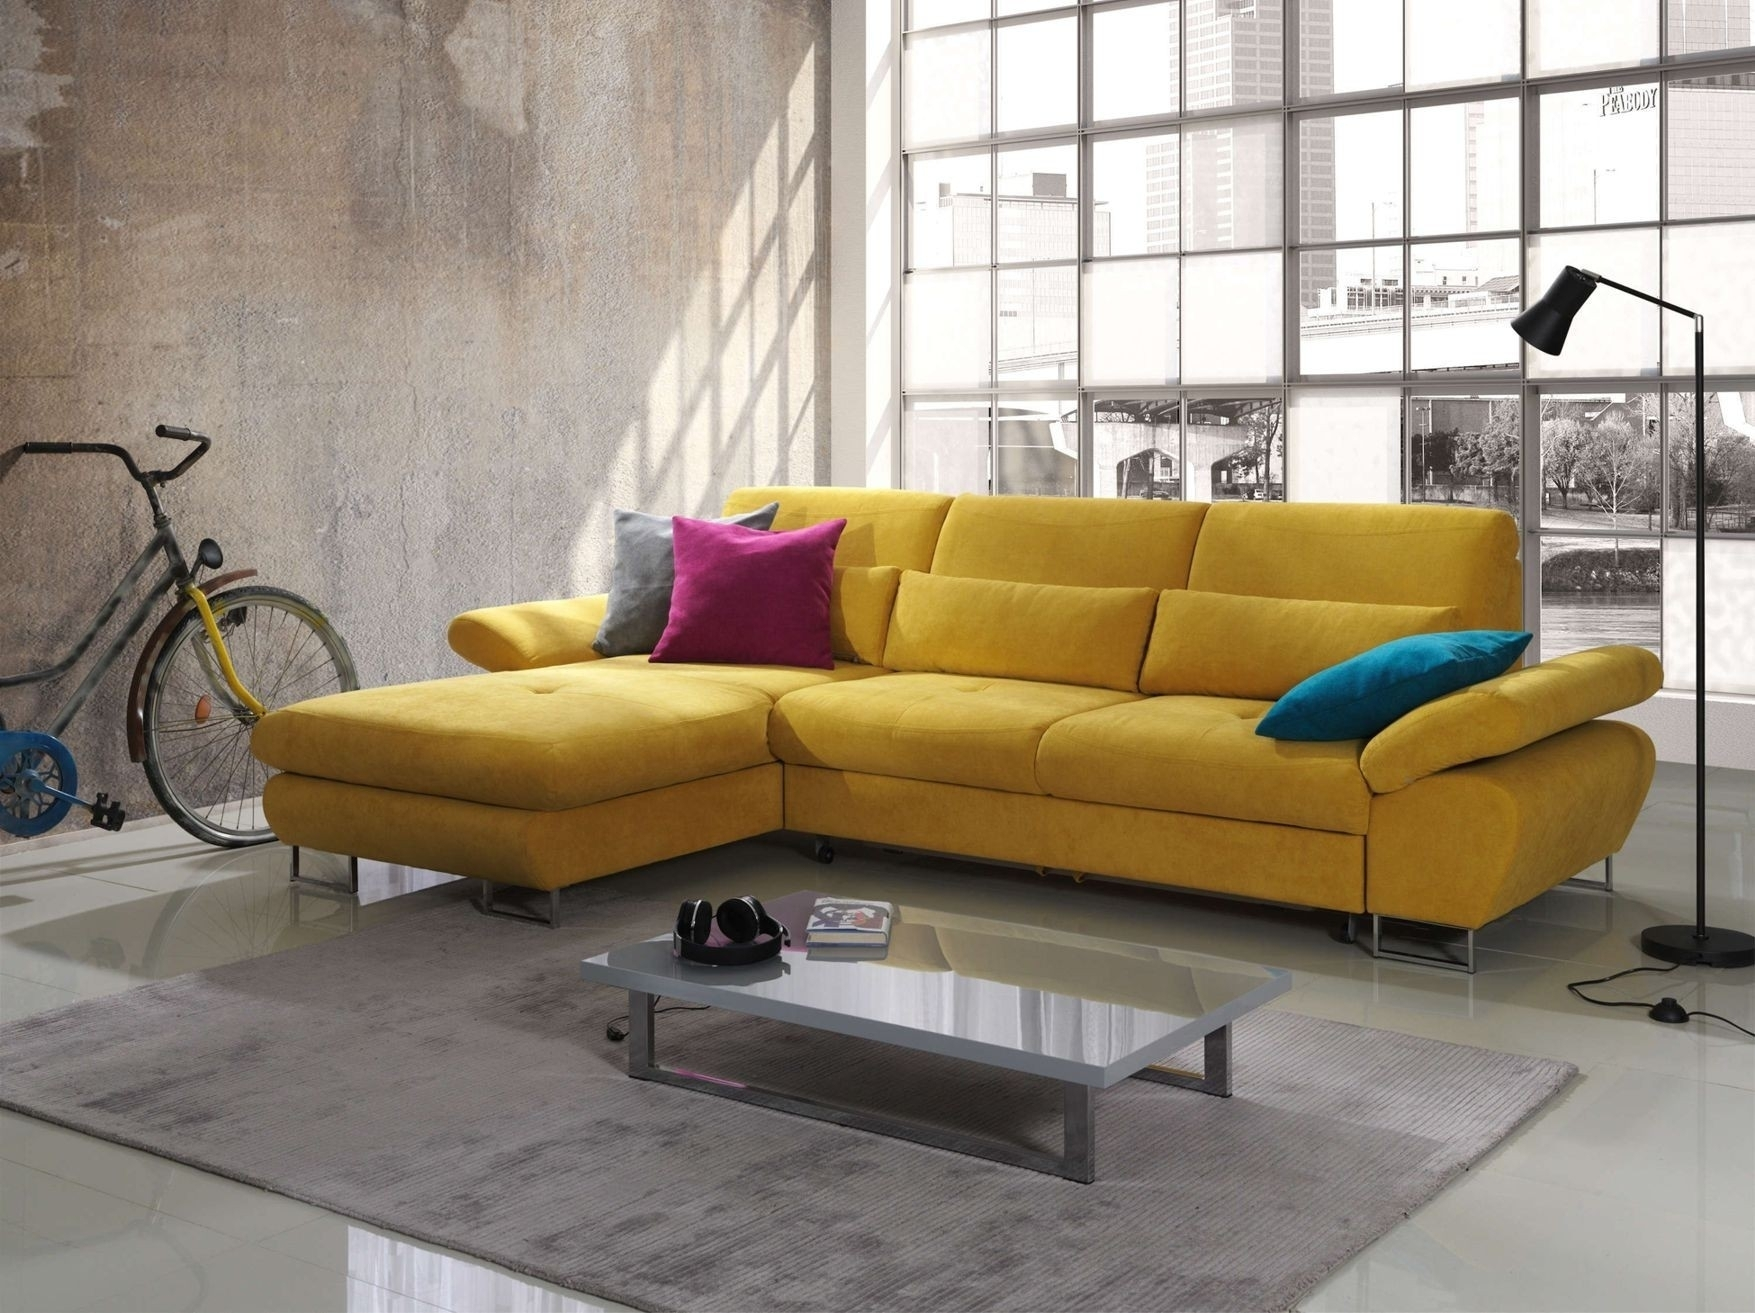 Best Apartment Sectional Sofa With Chaise Images – Liltigertoo With Apartment Sectional Sofas With Chaise (Image 4 of 10)